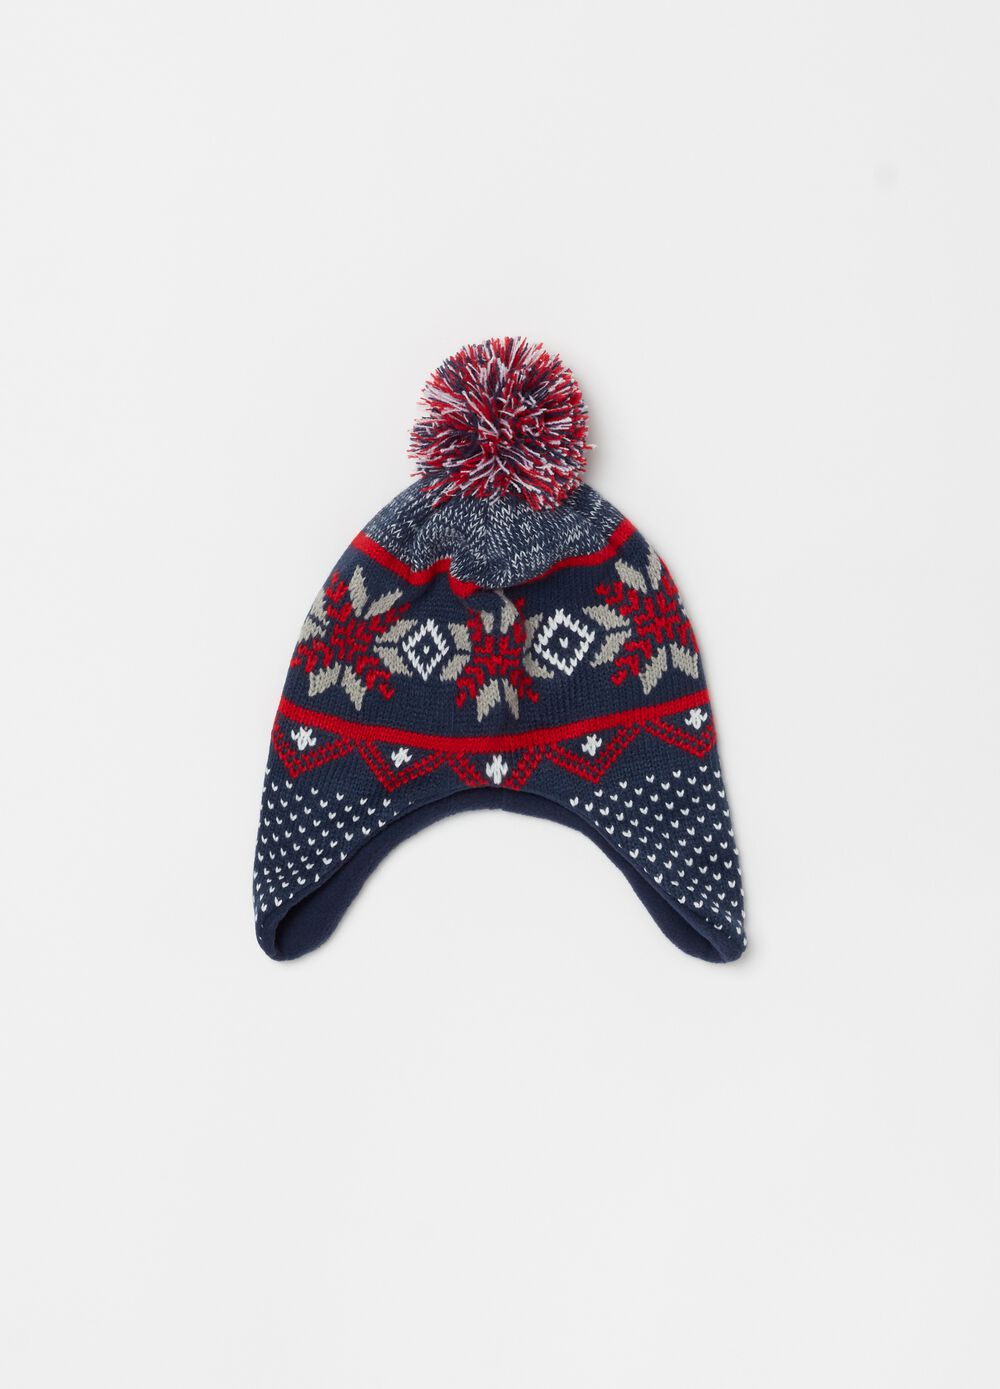 Knitted hat with patterned pompom